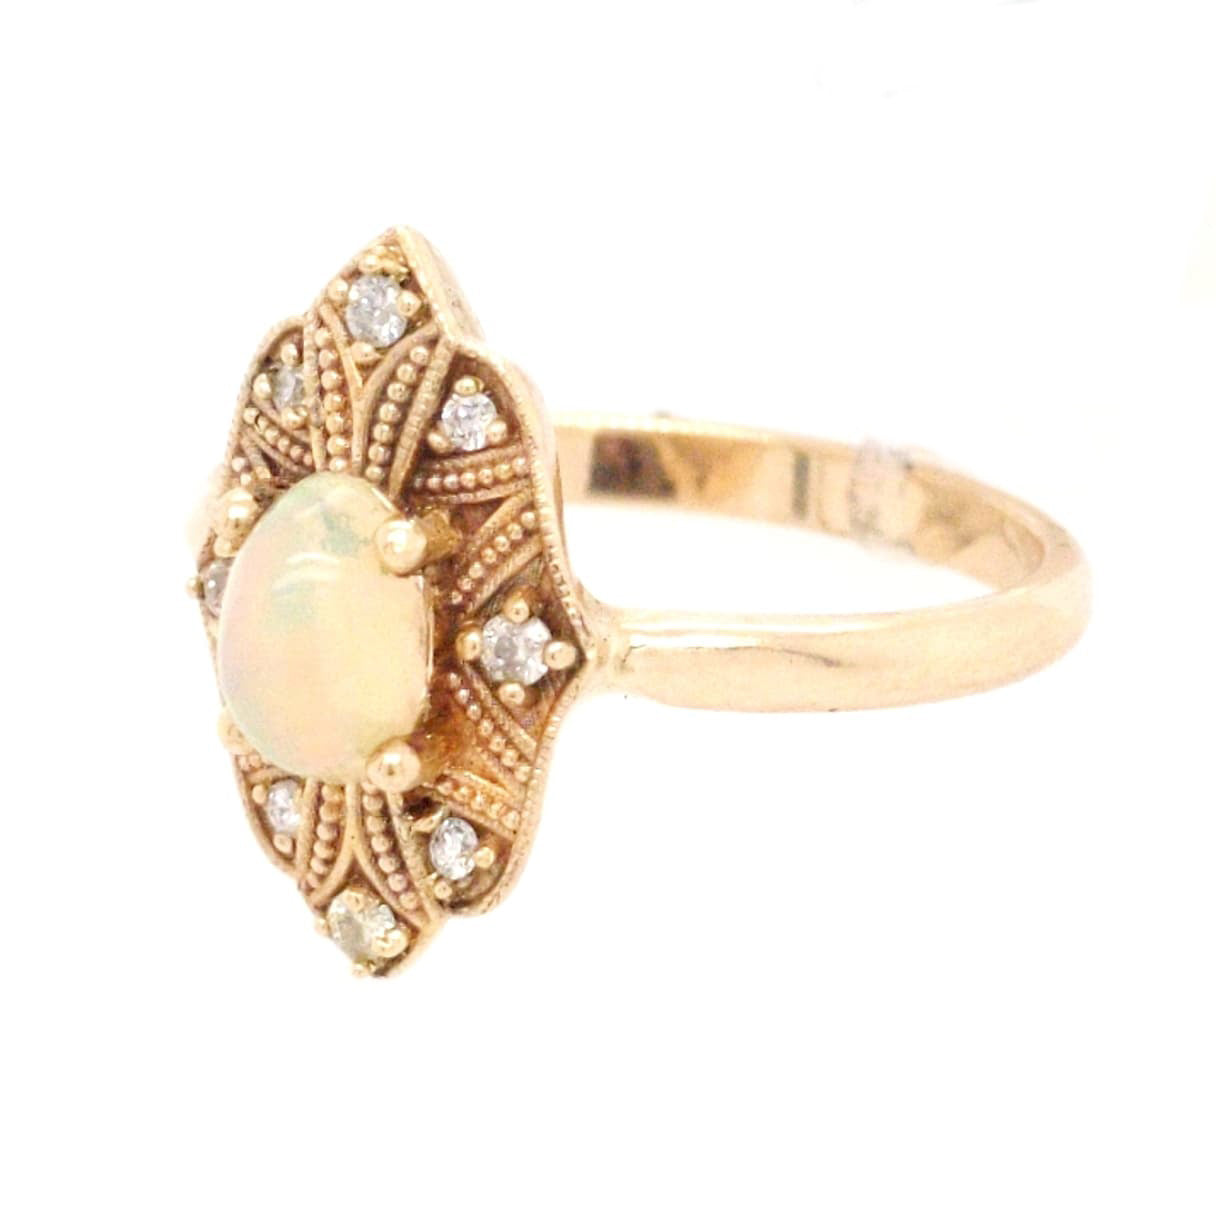 Cara - Natural Ethiopian Opal in Yellow Gold with Diamond Accents